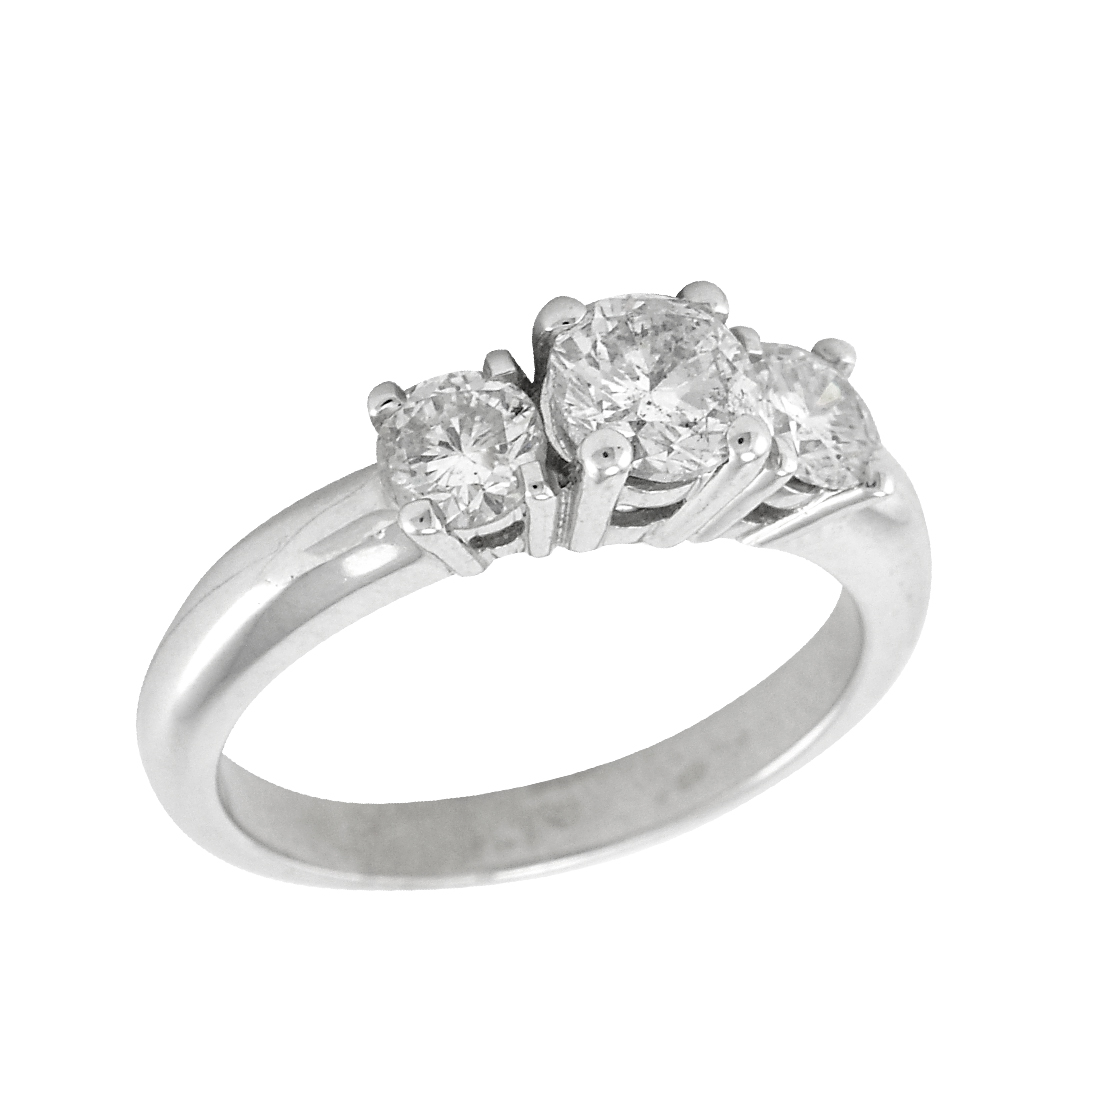 White Gold Trinity Set Engagement Ring